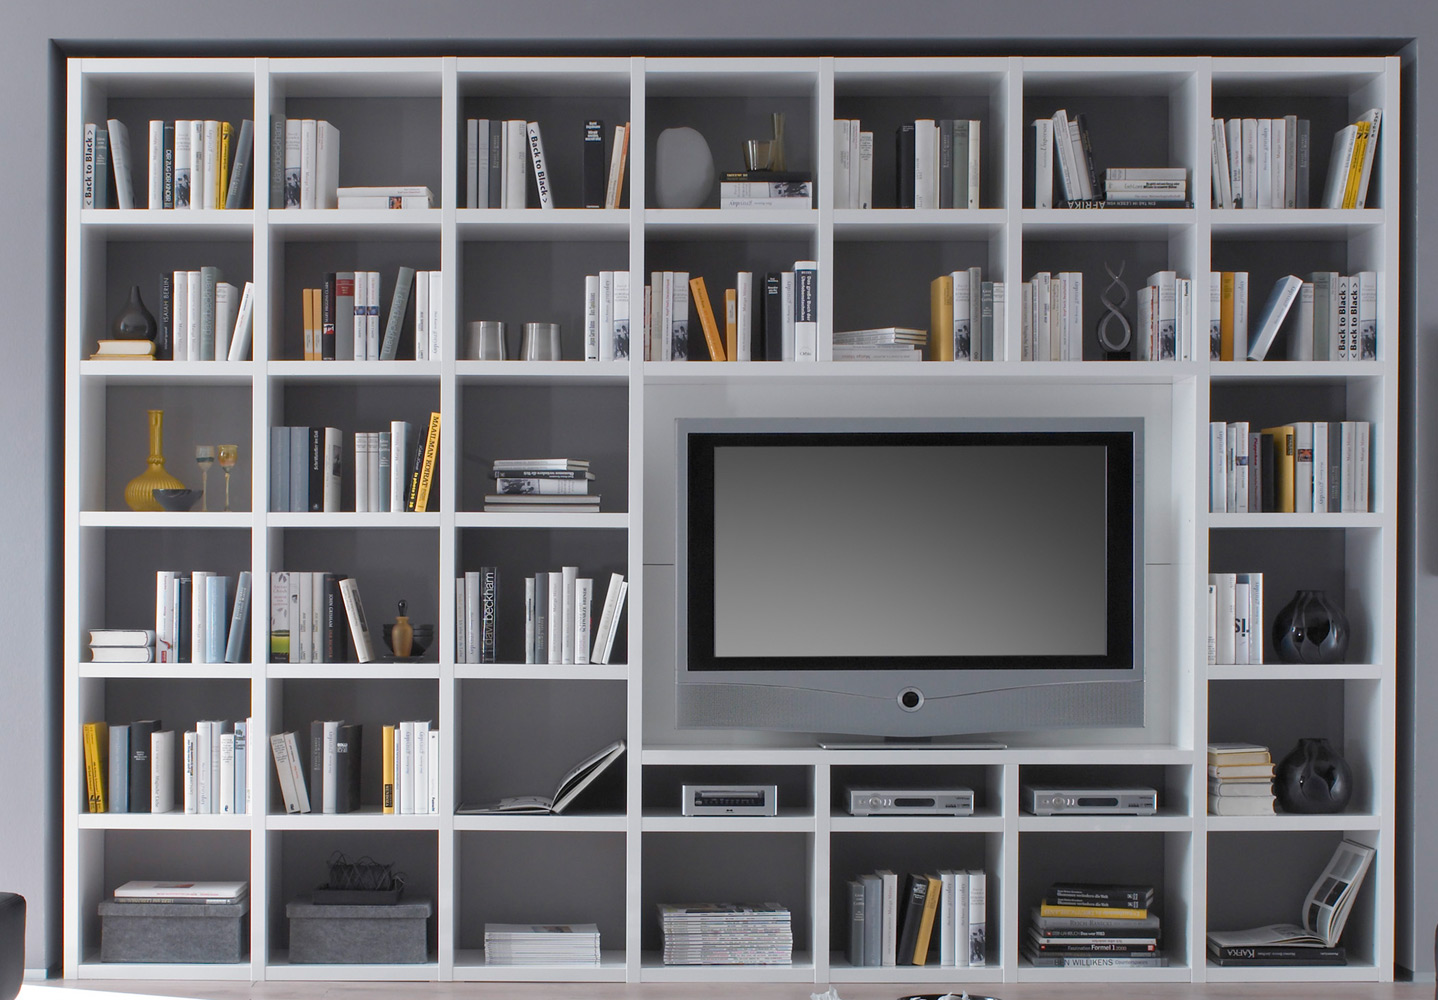 Details about Toro Bookcase Library Sliding Door Shelf with TV Tray Shelf  System individually- show original title